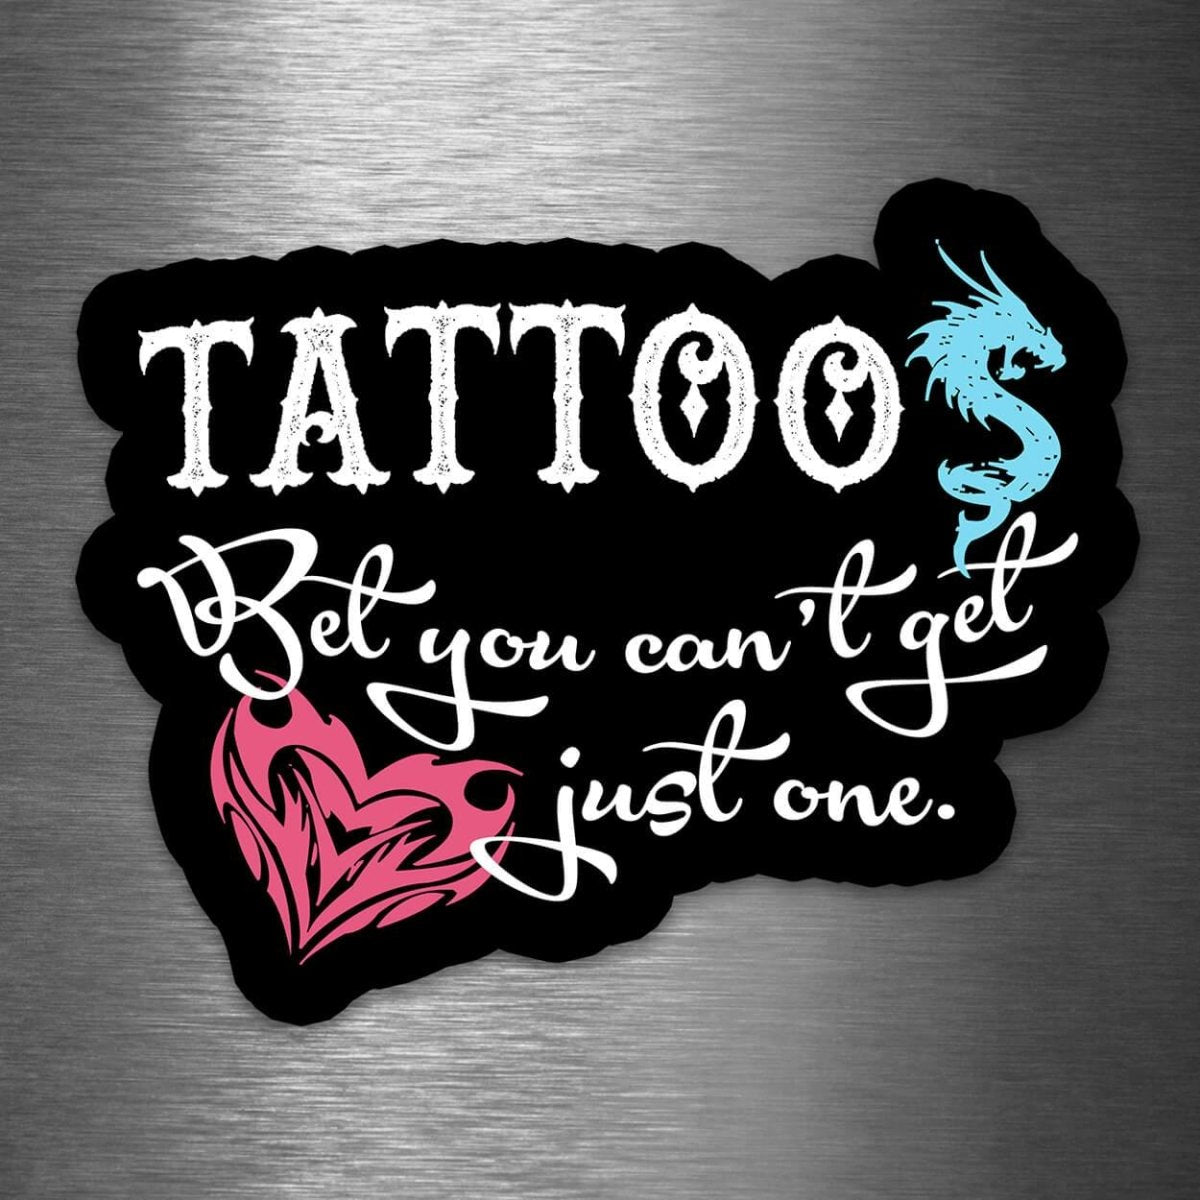 Tattoos - Bet You Can't Get Just One - Vinyl Sticker - Dan Pearce Sticker Shop